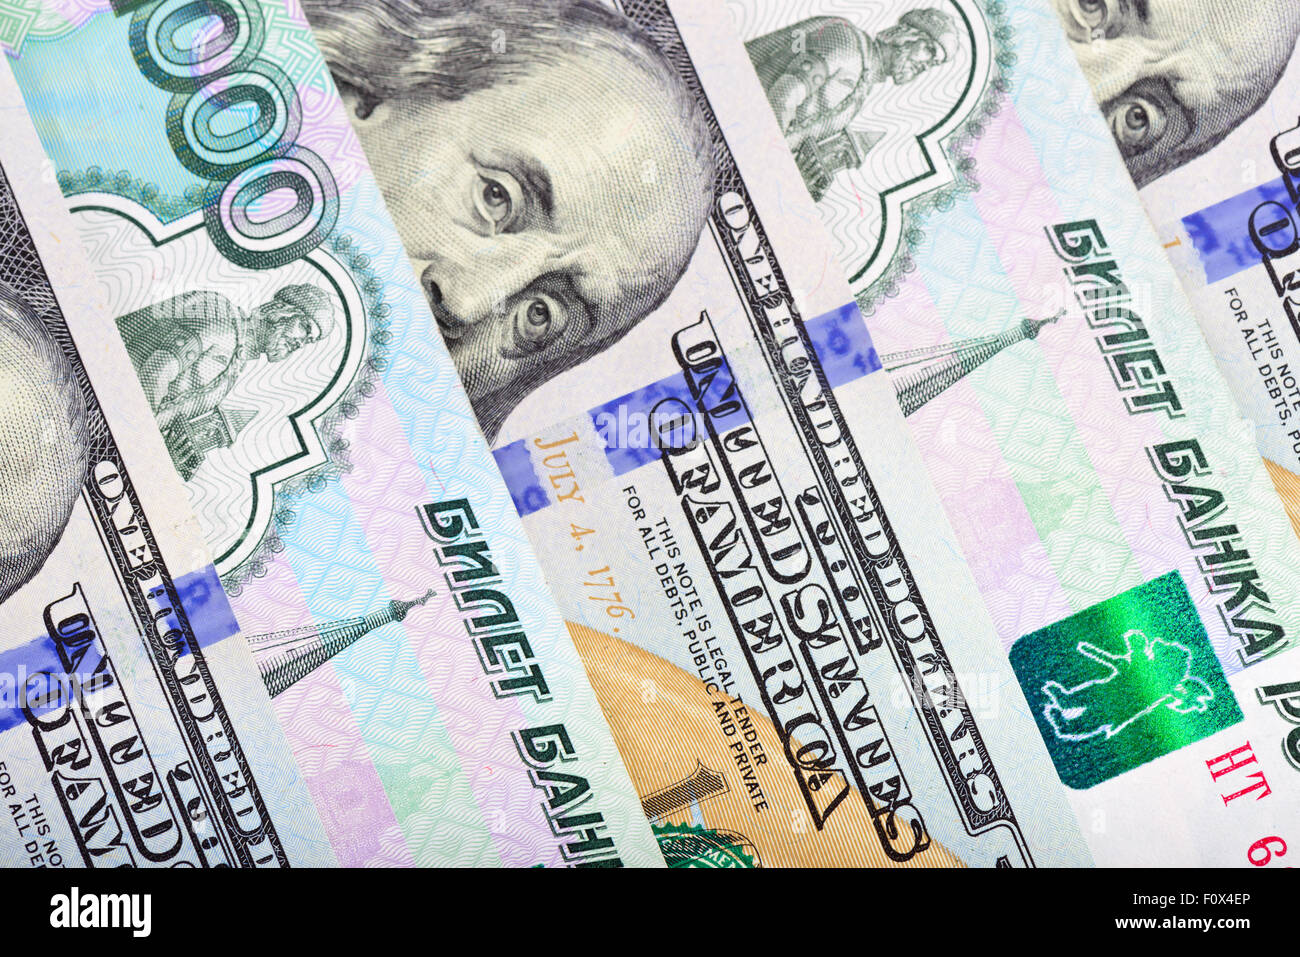 Dollars and ruble mix background - Stock Image